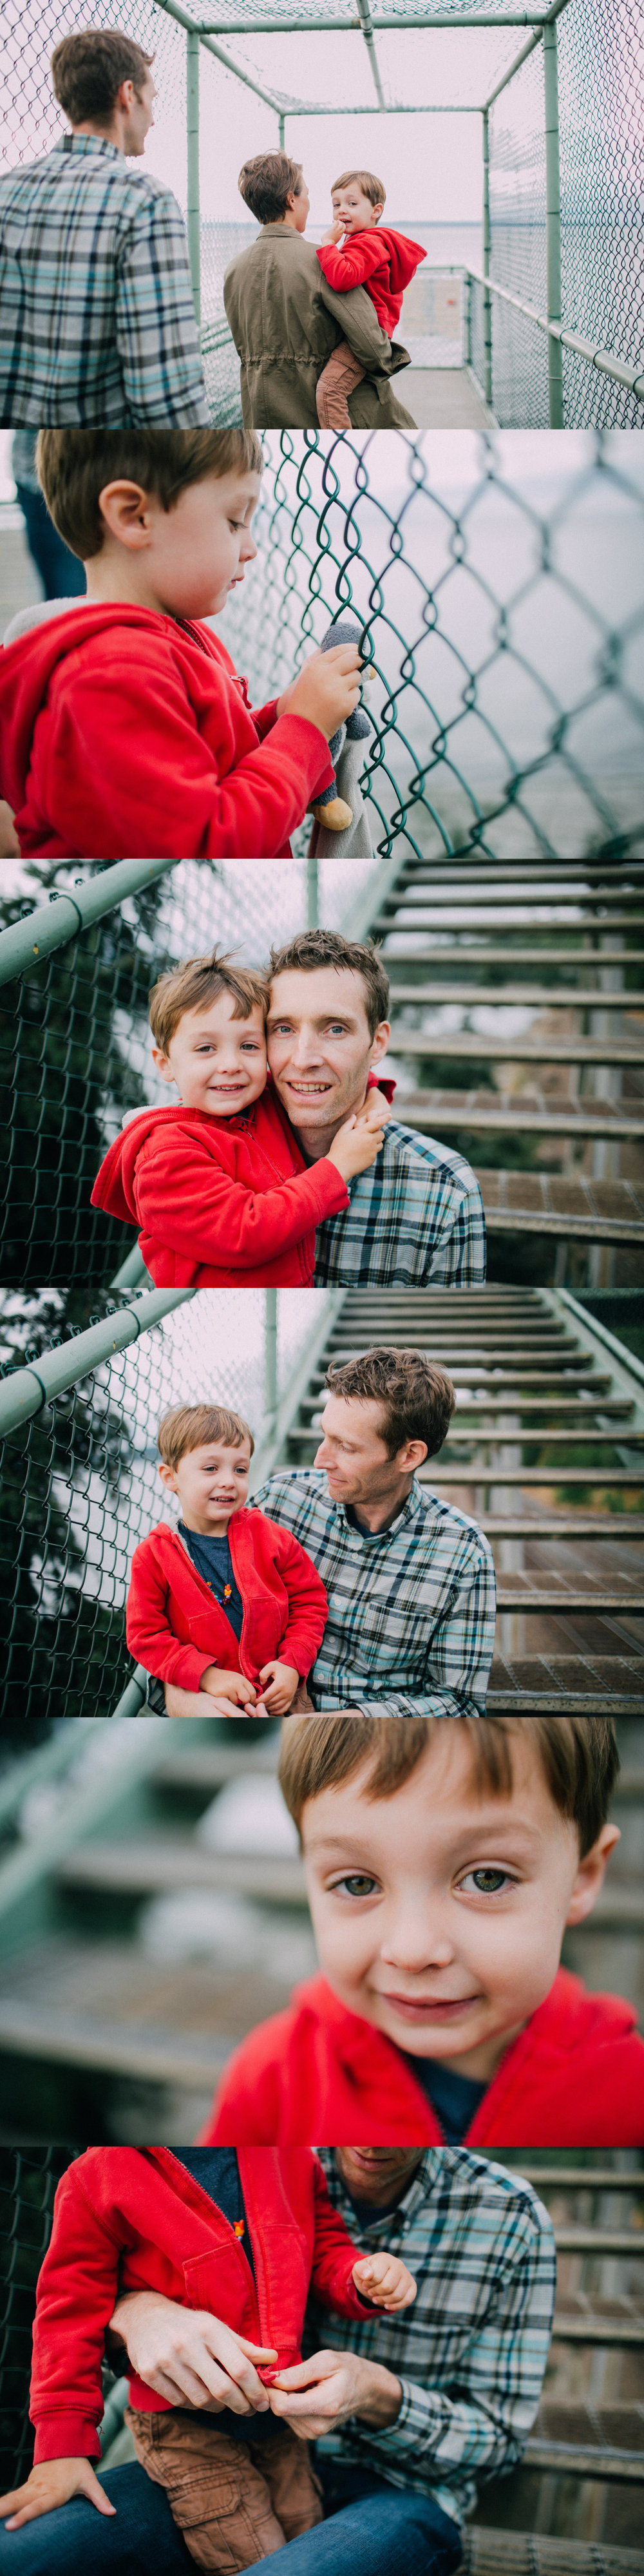 casual family lifestyle photography seattle carkeek session-4.jpg